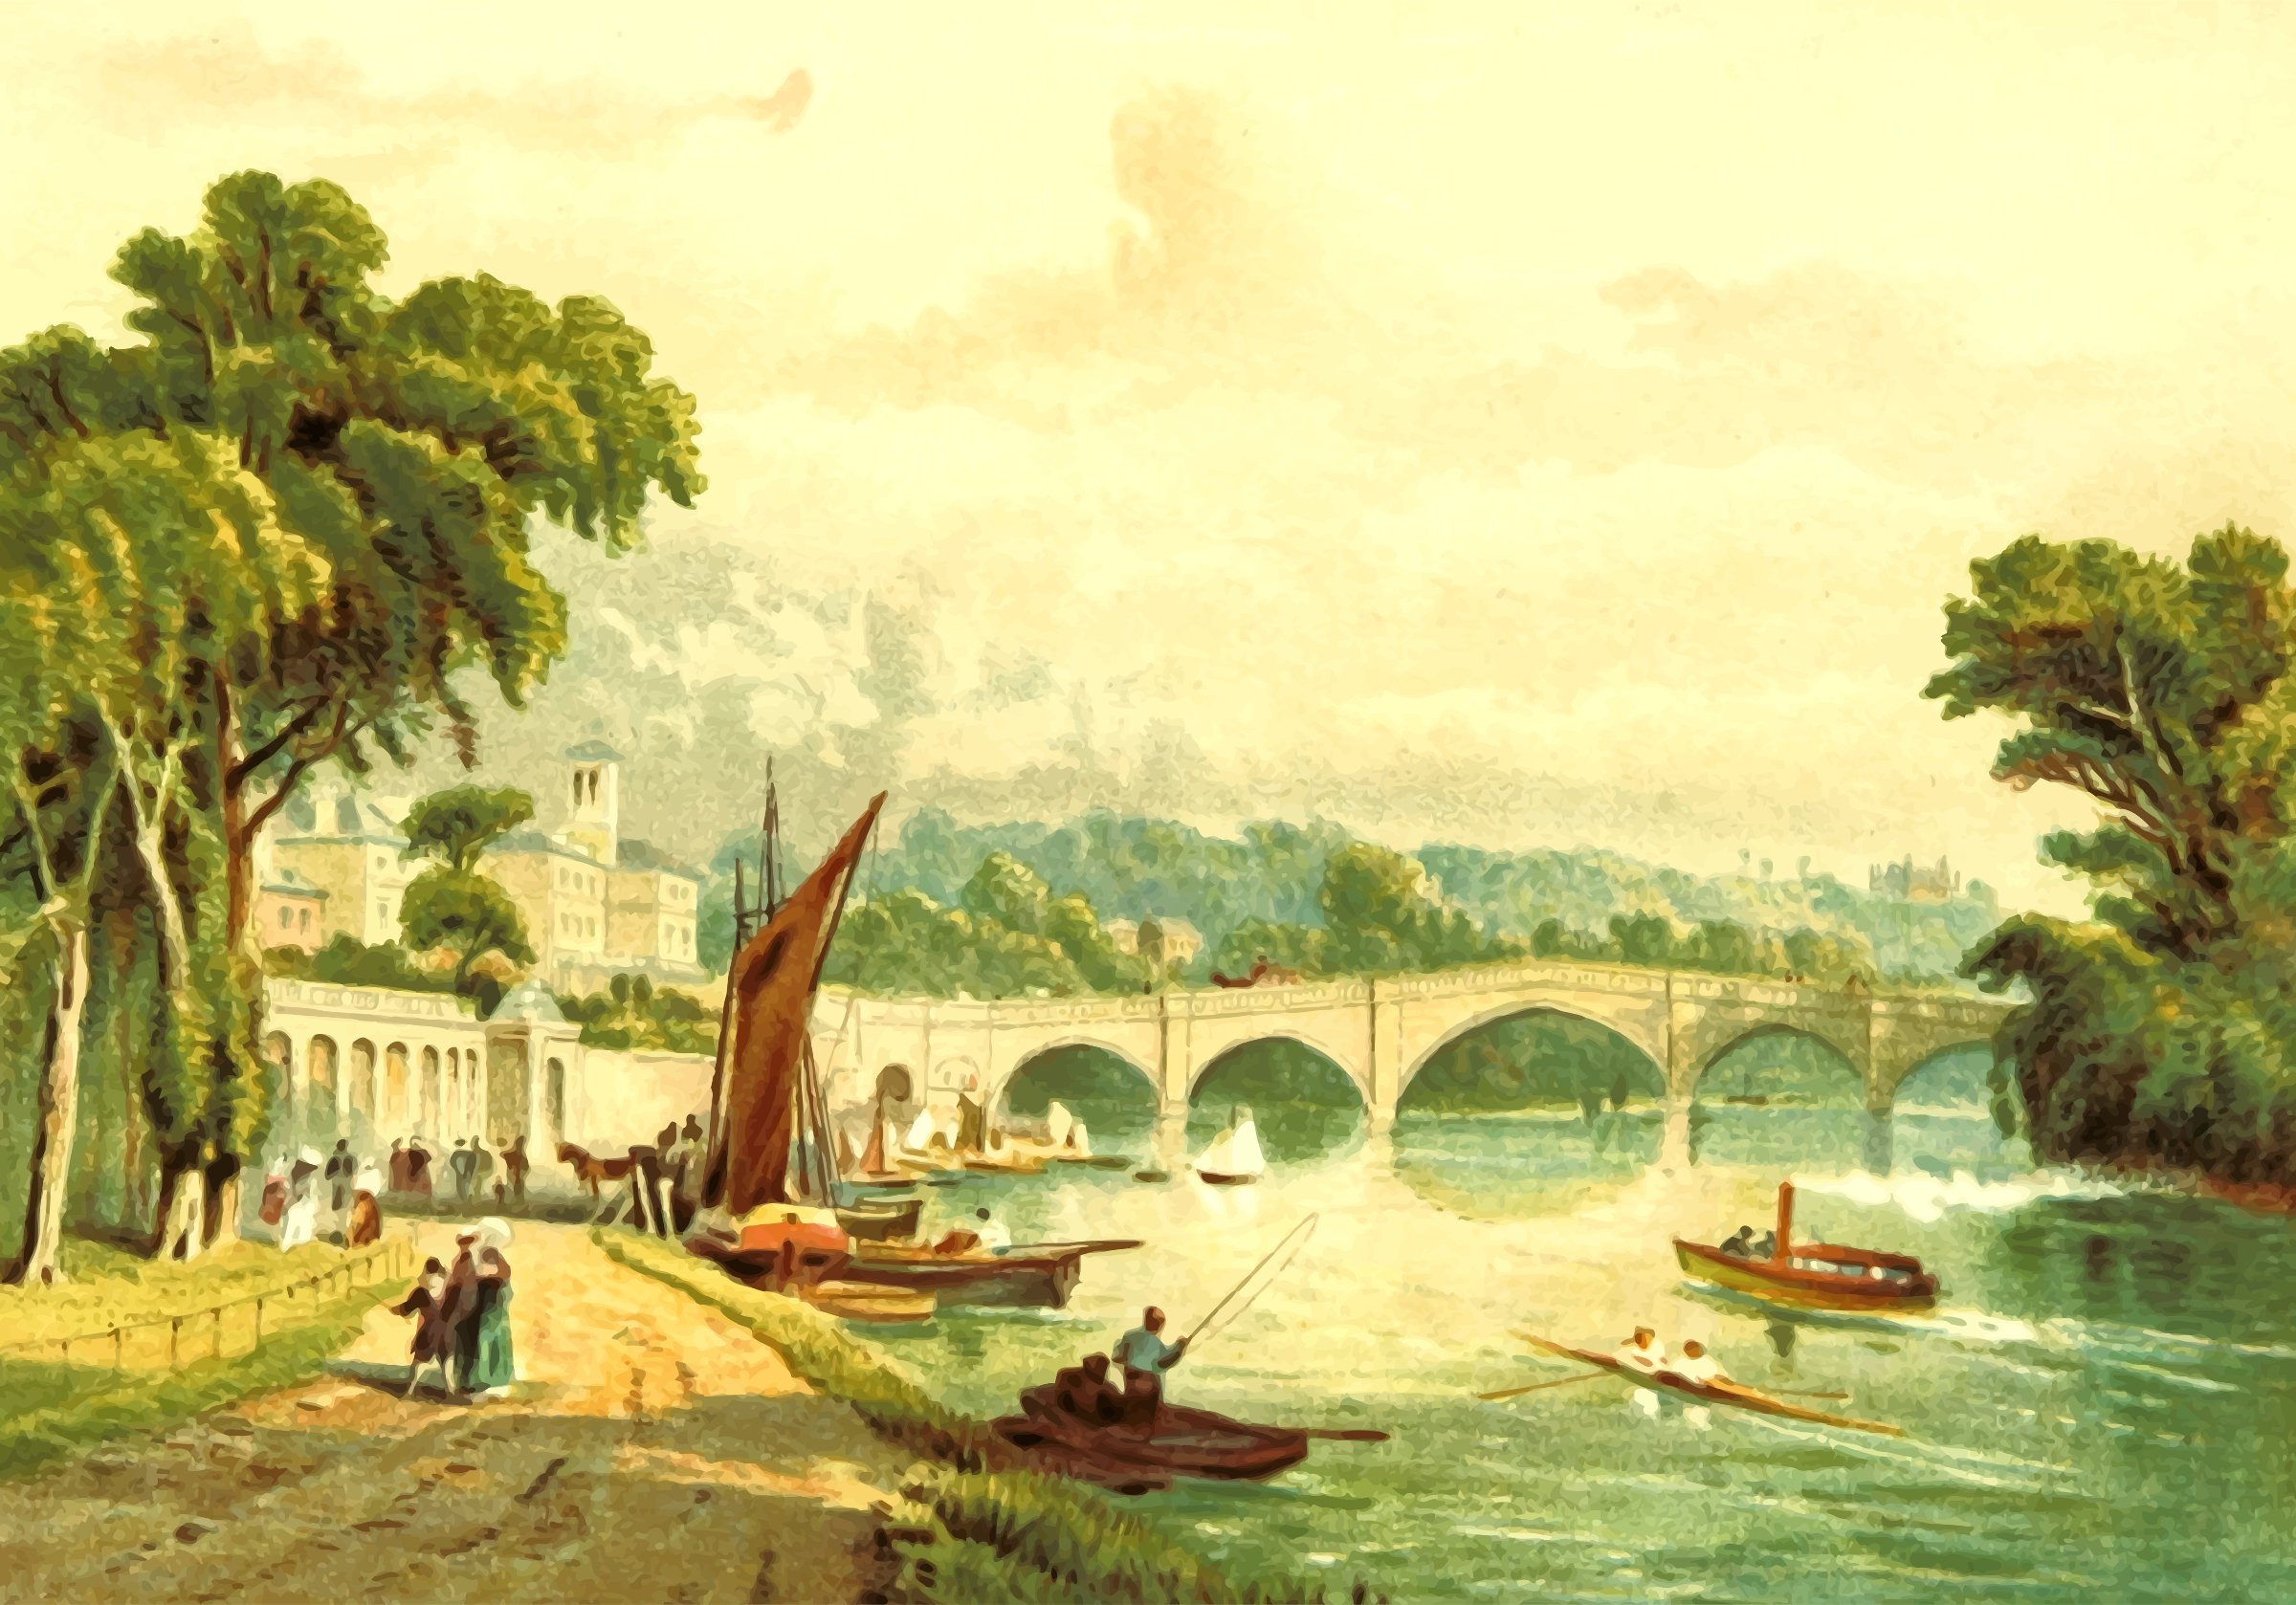 Richmond Bridge by Firkin